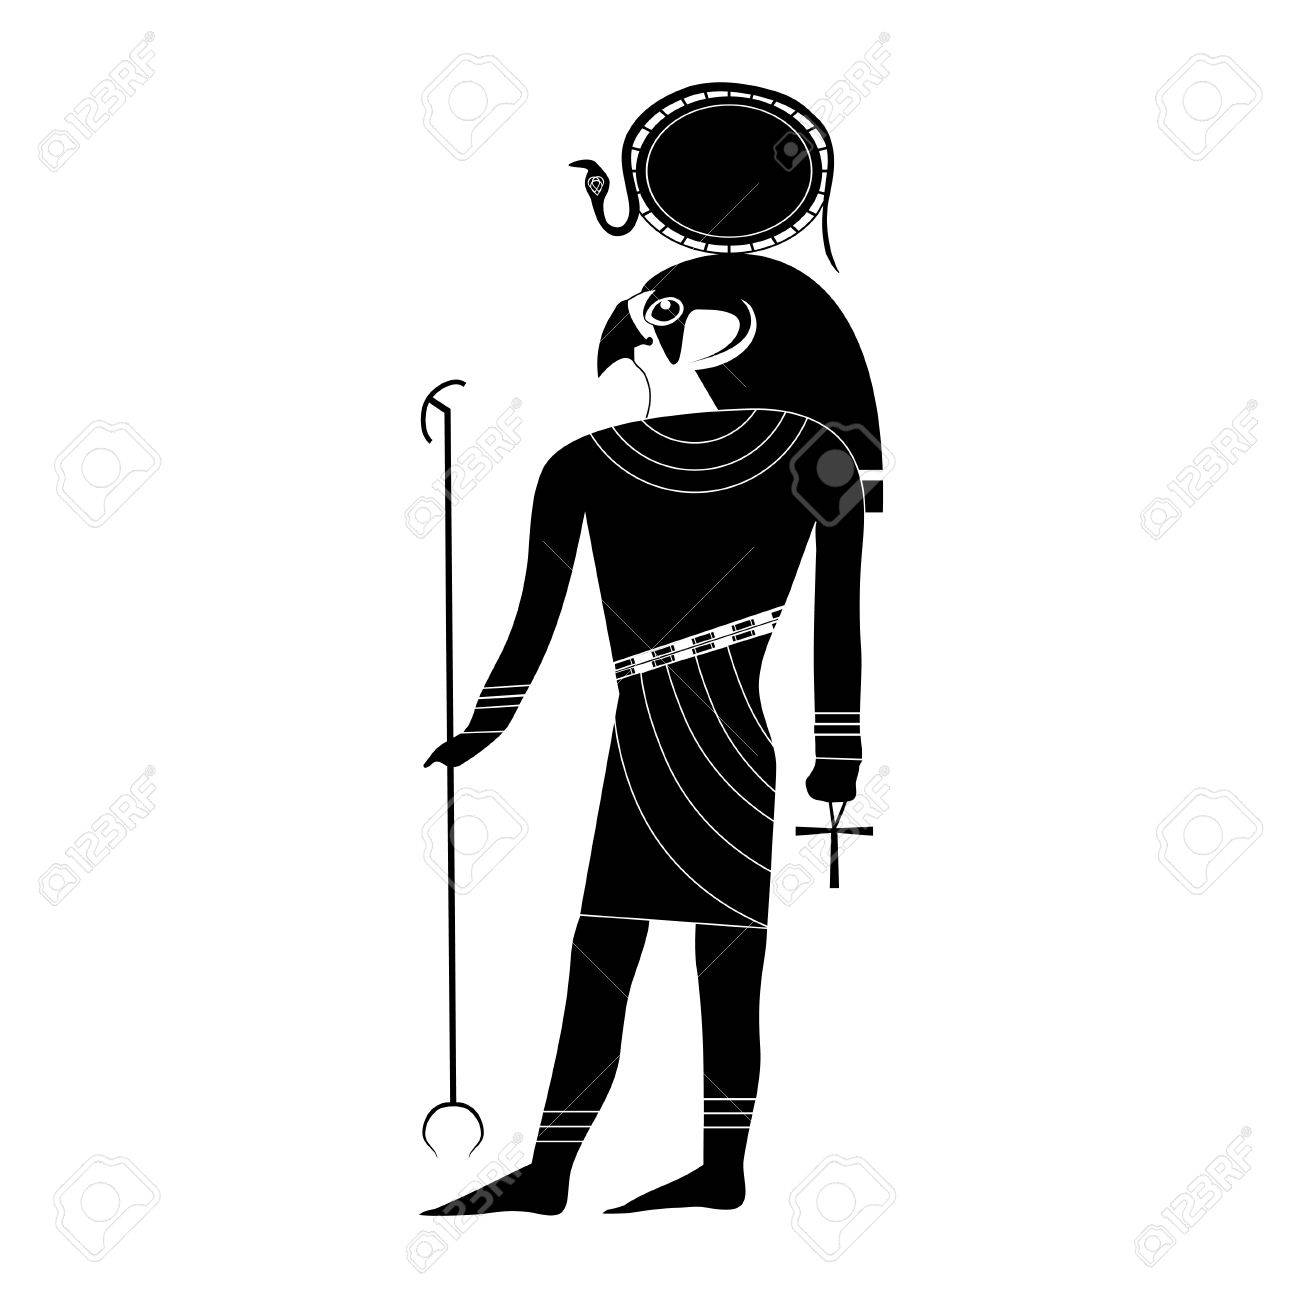 Black and white silhouette of the ancient egyptian god ra in black and white silhouette of the ancient egyptian god ra in ancient traditional style with a buycottarizona